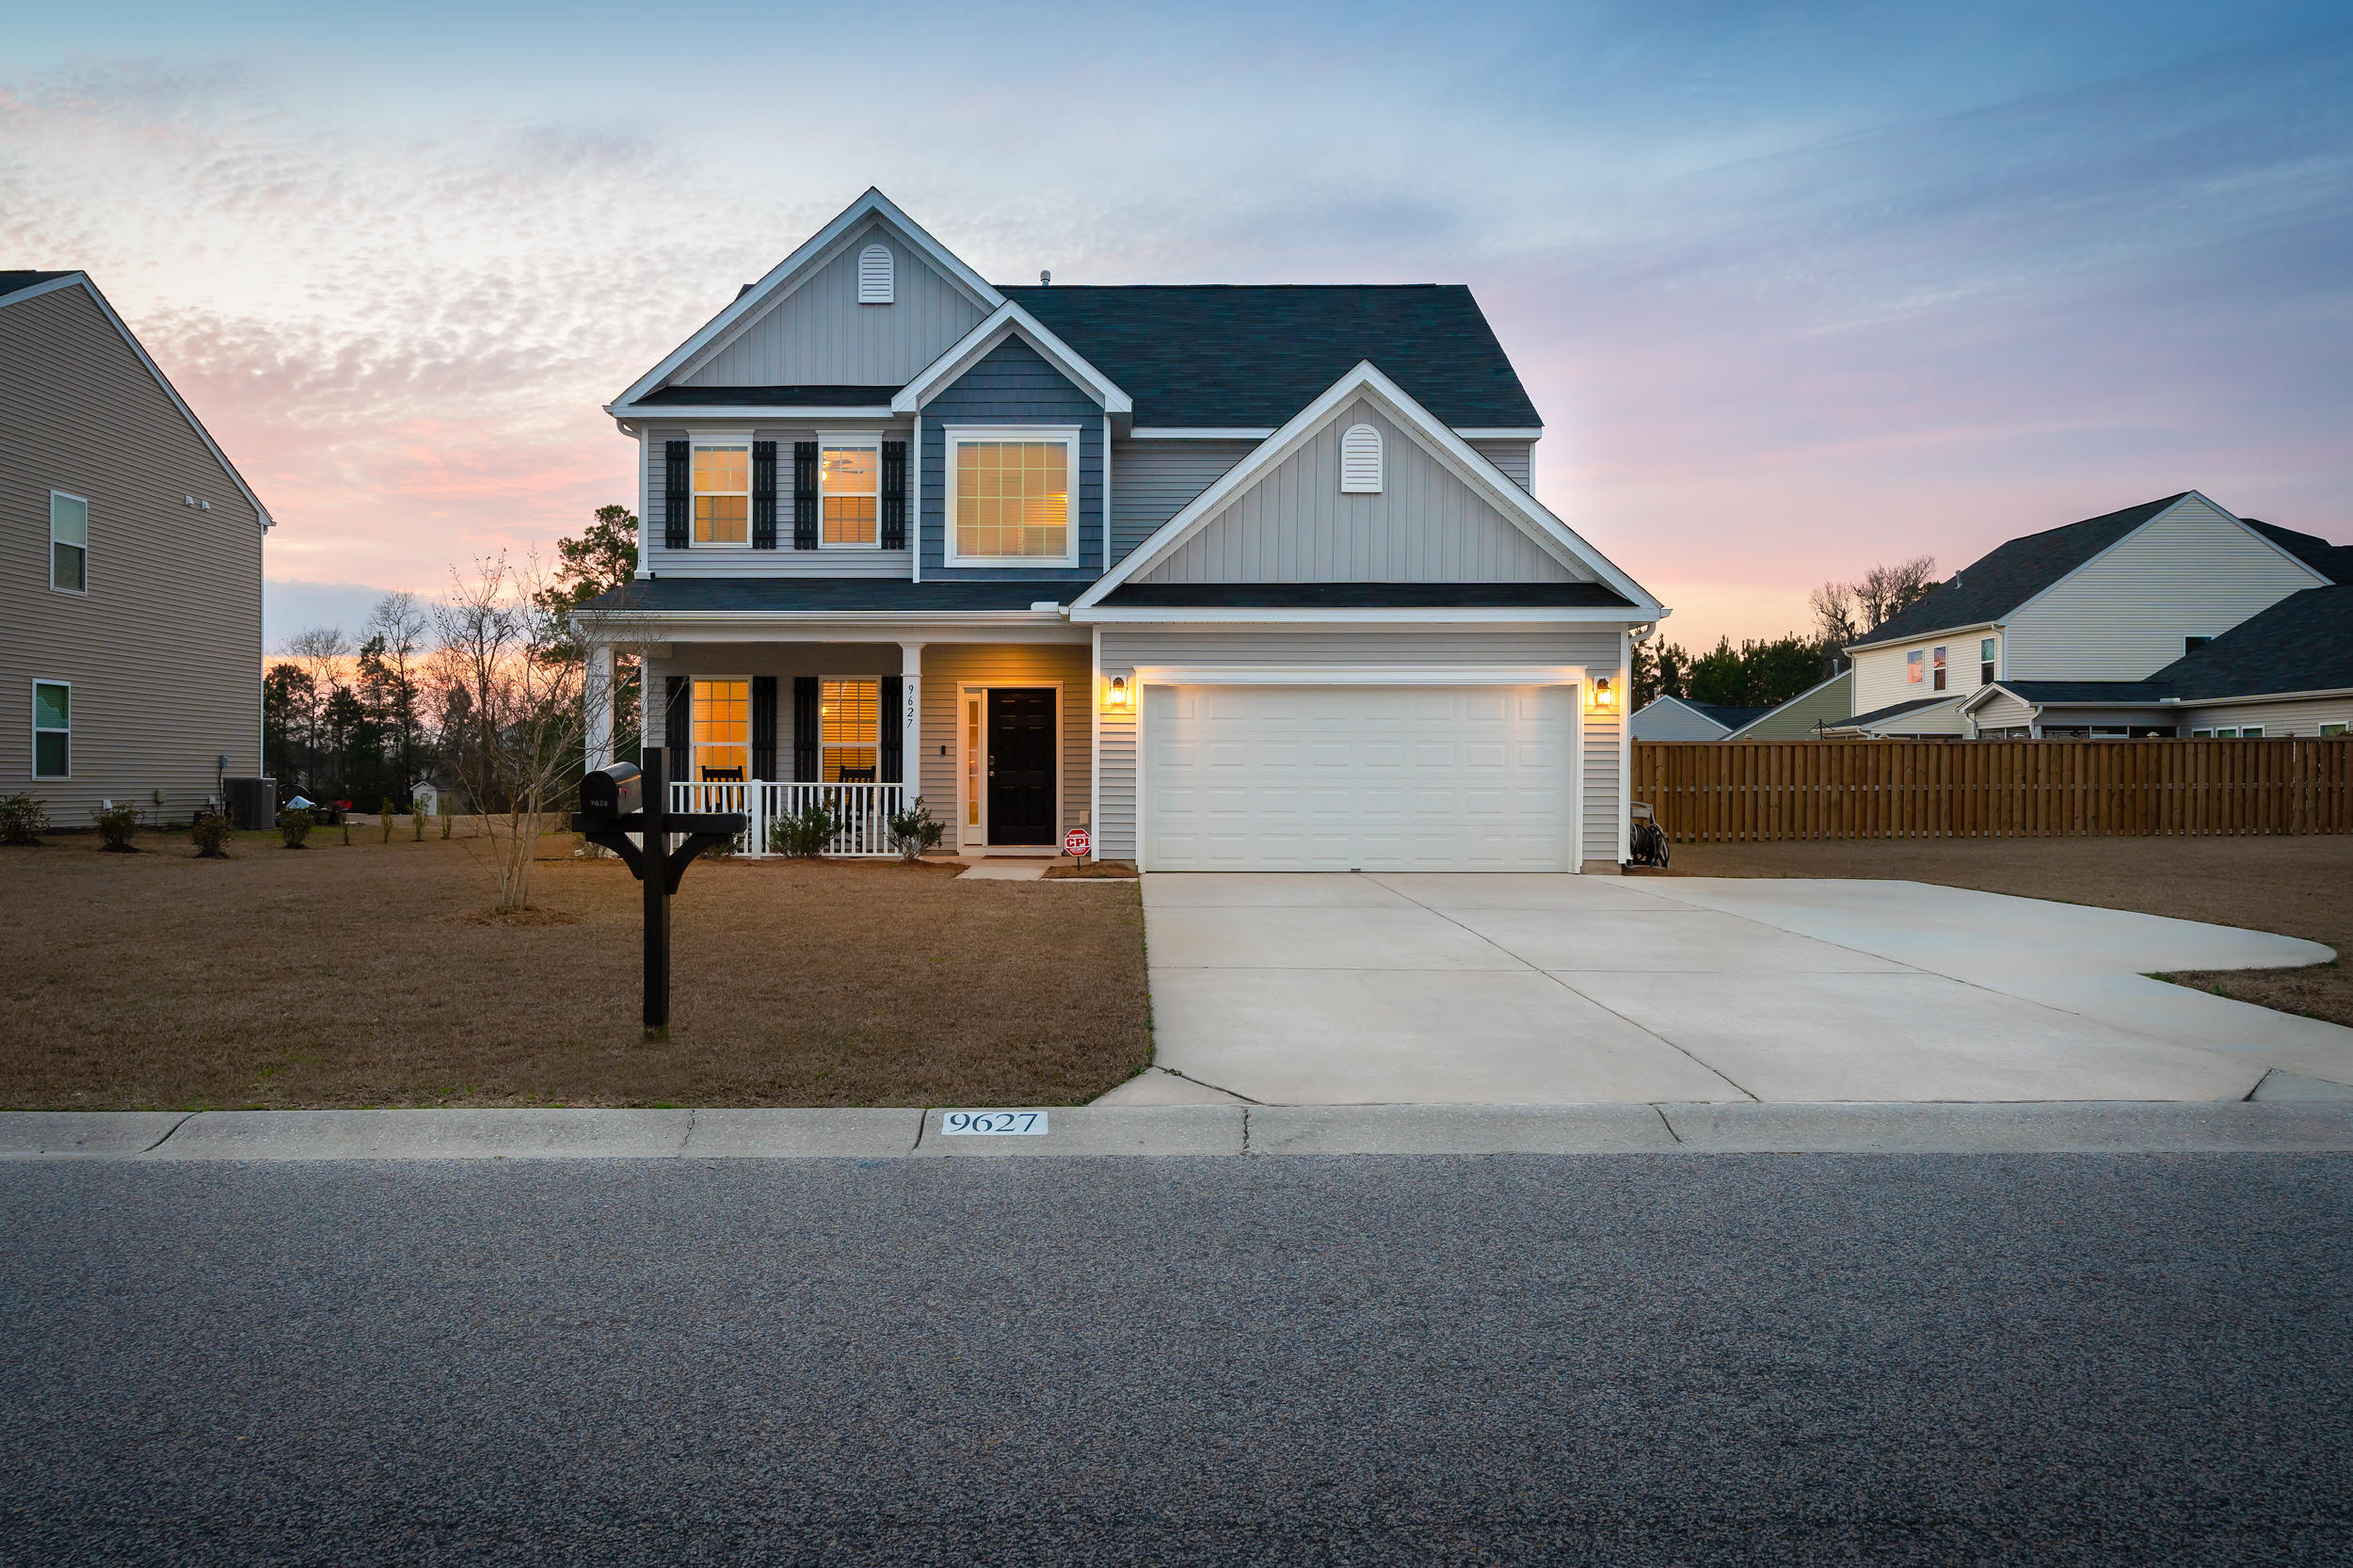 9627 Stockport Circle Summerville, SC 29485